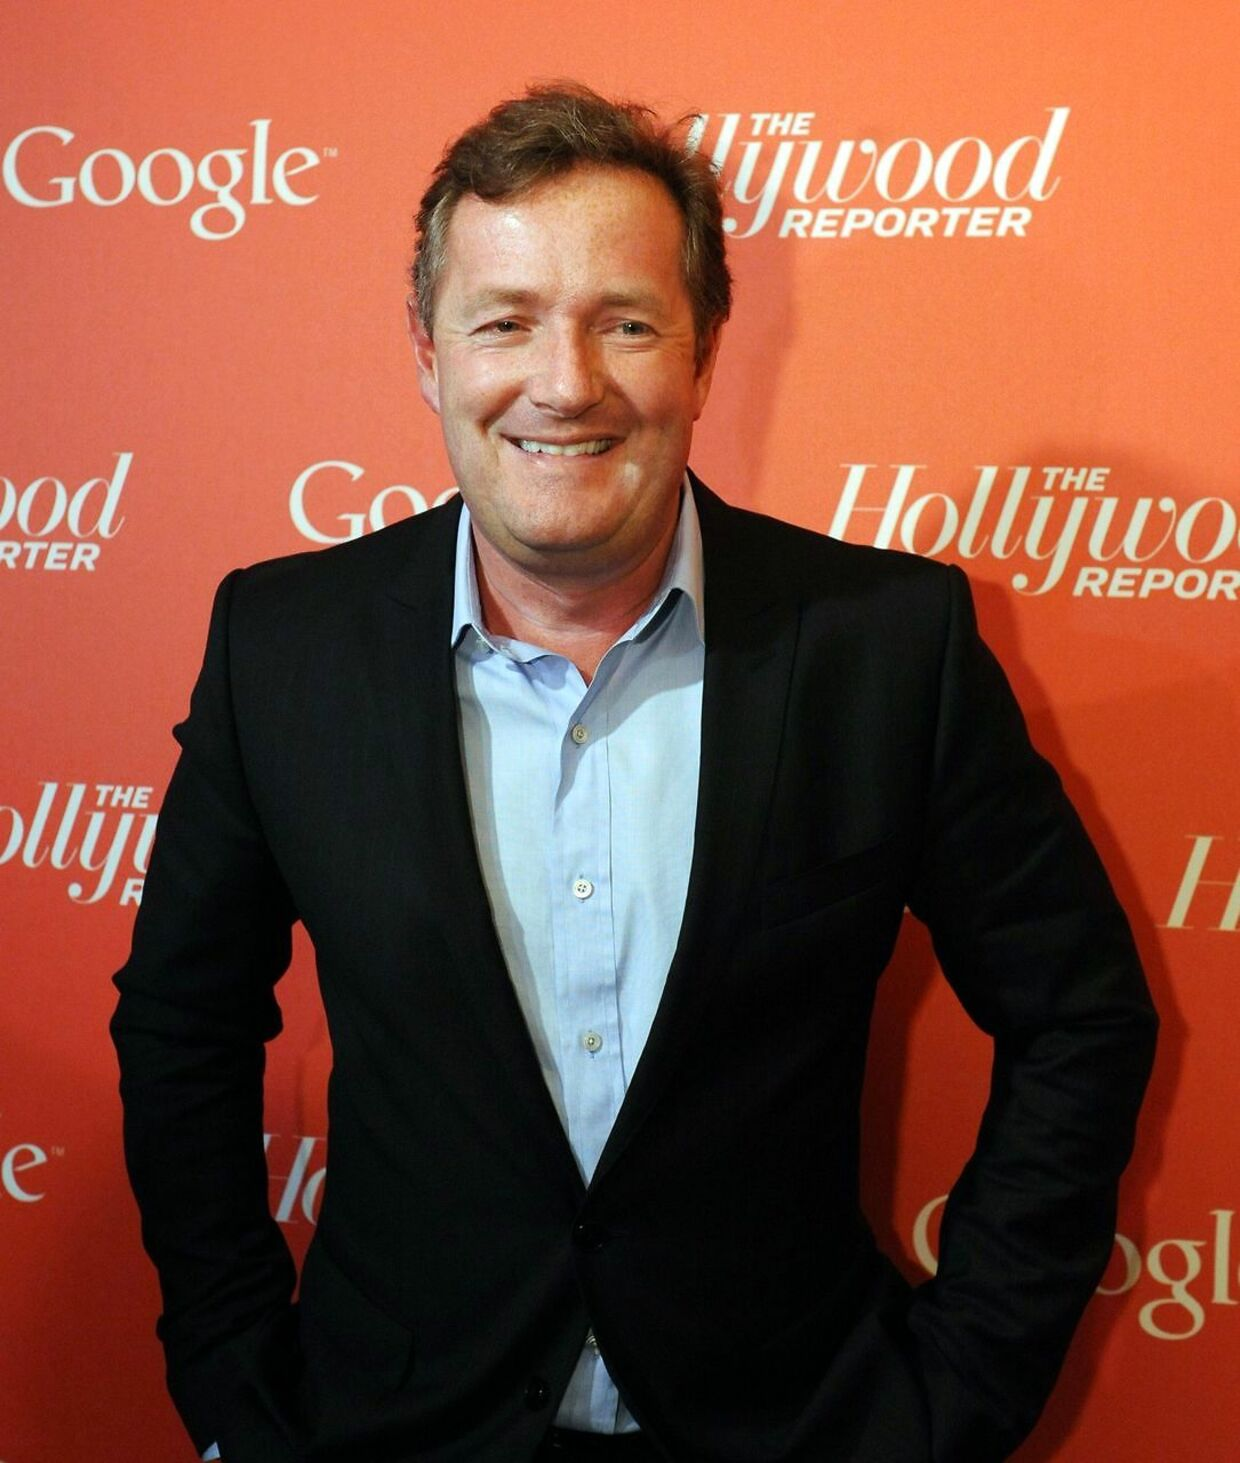 (FILES)CNN's Piers Morgan arrives at a red carpet event hosted by Google and the Hollywood Reporter on the eve of the annual White House Correspondents' Association dinner in Washington in this April 27, 2012 file photo. US gun rights advocates have signed a White House petition calling for British CNN host Piers Morgan to be deported for allegedly attacking the Second Amendment rights of ordinary Americans. The outspoken former British tabloid editor has launched something of a personal crusade for greater gun control measures in the wake of the December 14 massacre at Sandy Hook elementary in Newtown, Connecticut. On December 18, 2012, Morgan held an especially contentious interview with executive director of Gun Owners of America Larry Pratt, appearing to become incensed and incredulous when Pratt suggested more, not fewer, weapons as the solution. AFP PHOTO / Nicholas KAMM / FILES